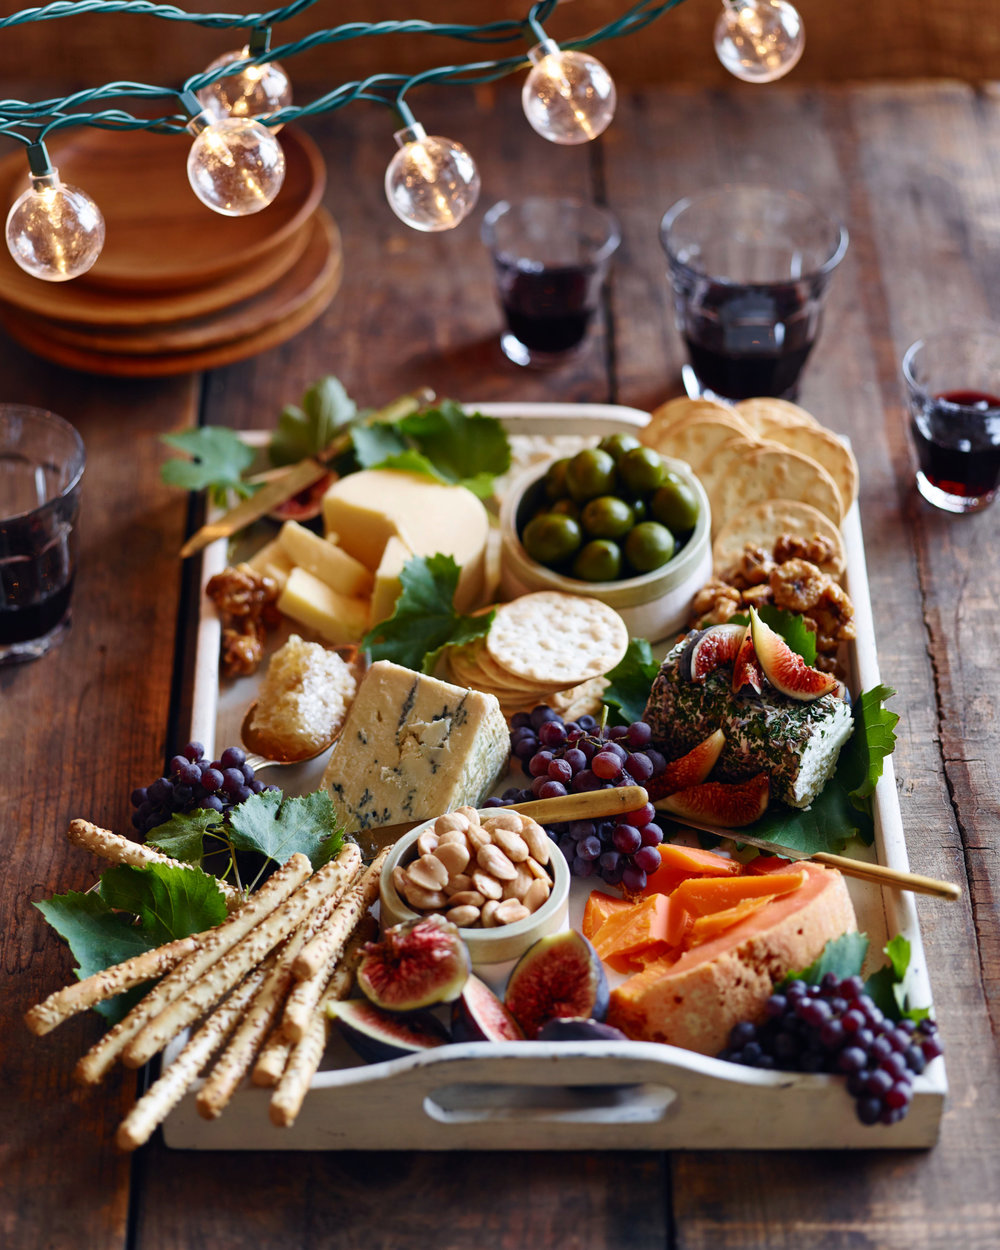 http://thepioneerwoman.com/food-and-friends/how-to-assemble-the-perfect-fall-cheese-board/